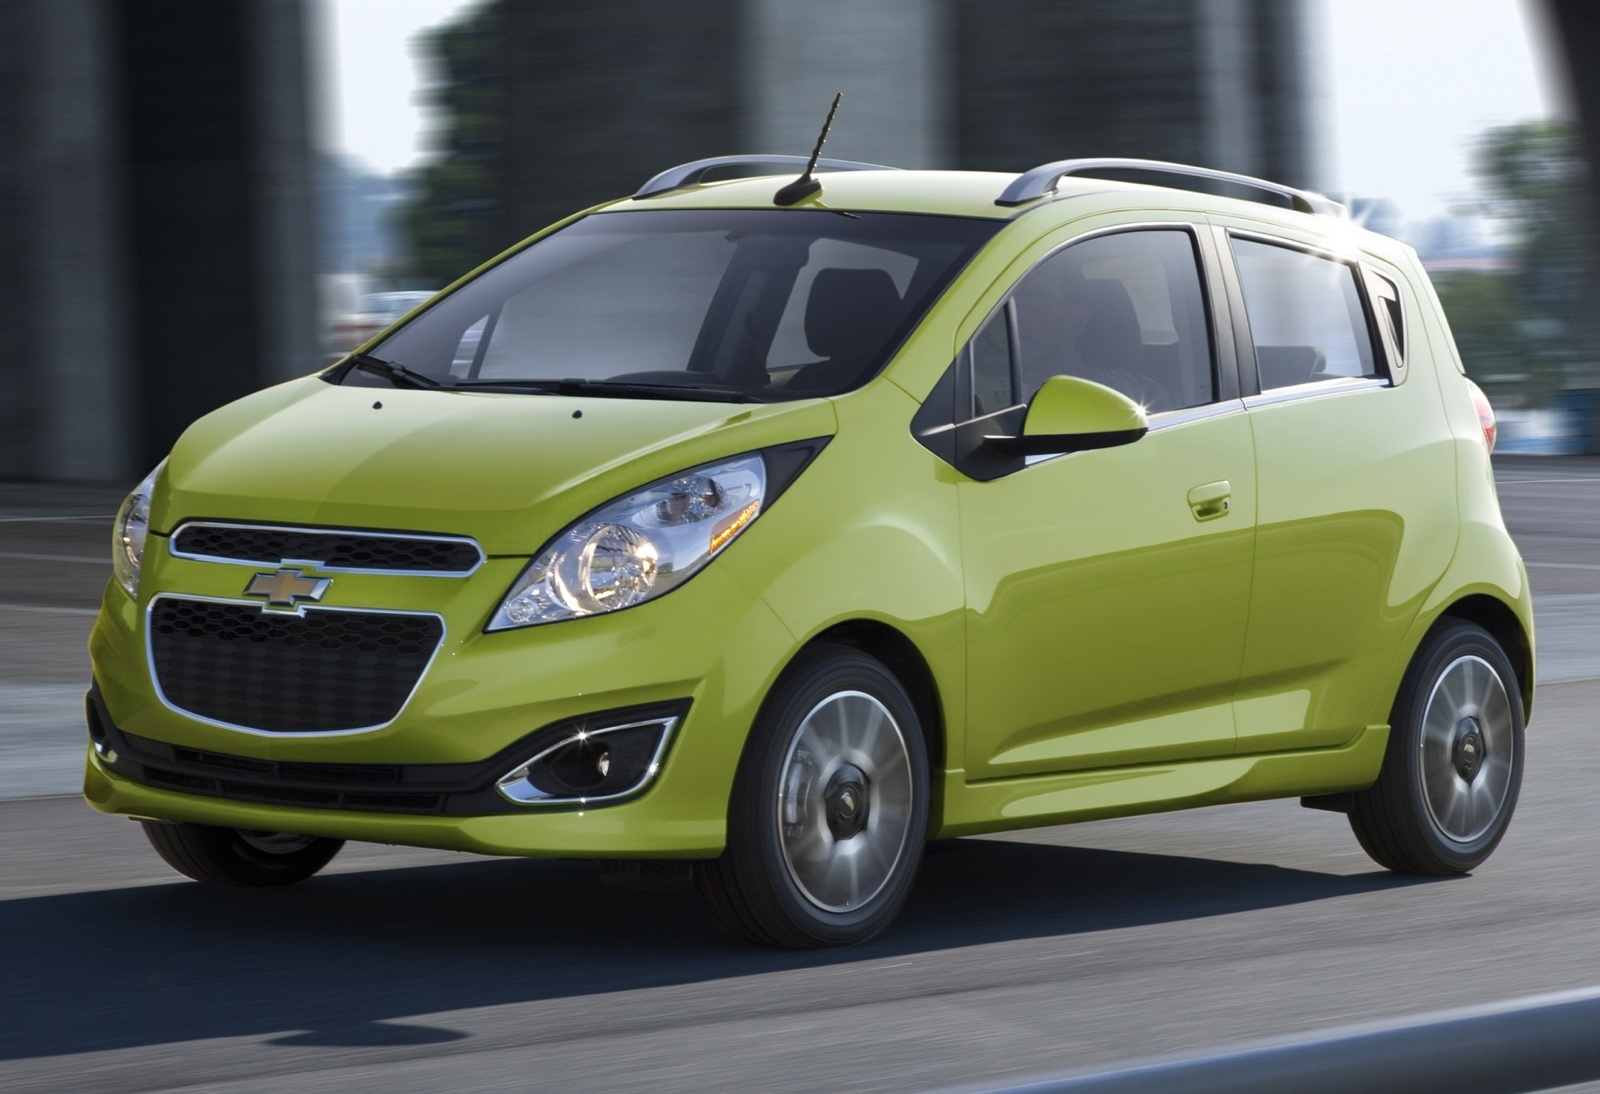 All Chevy 2015 chevy spark review : 2015 Chevrolet Spark - Overview - CarGurus